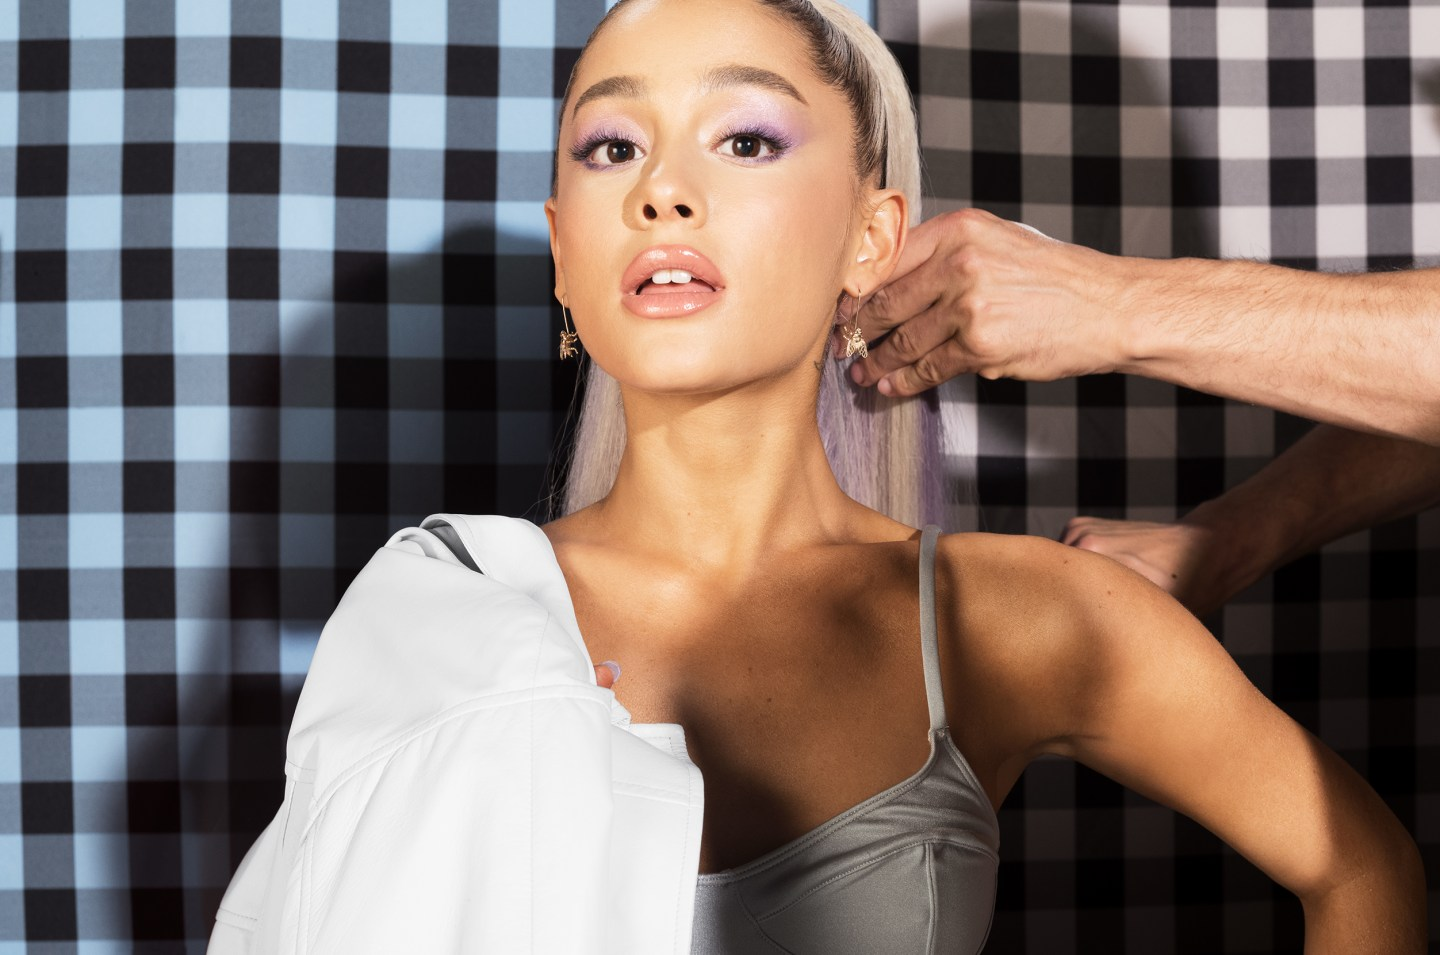 New Ariana Grande song inspired by anxiety attack